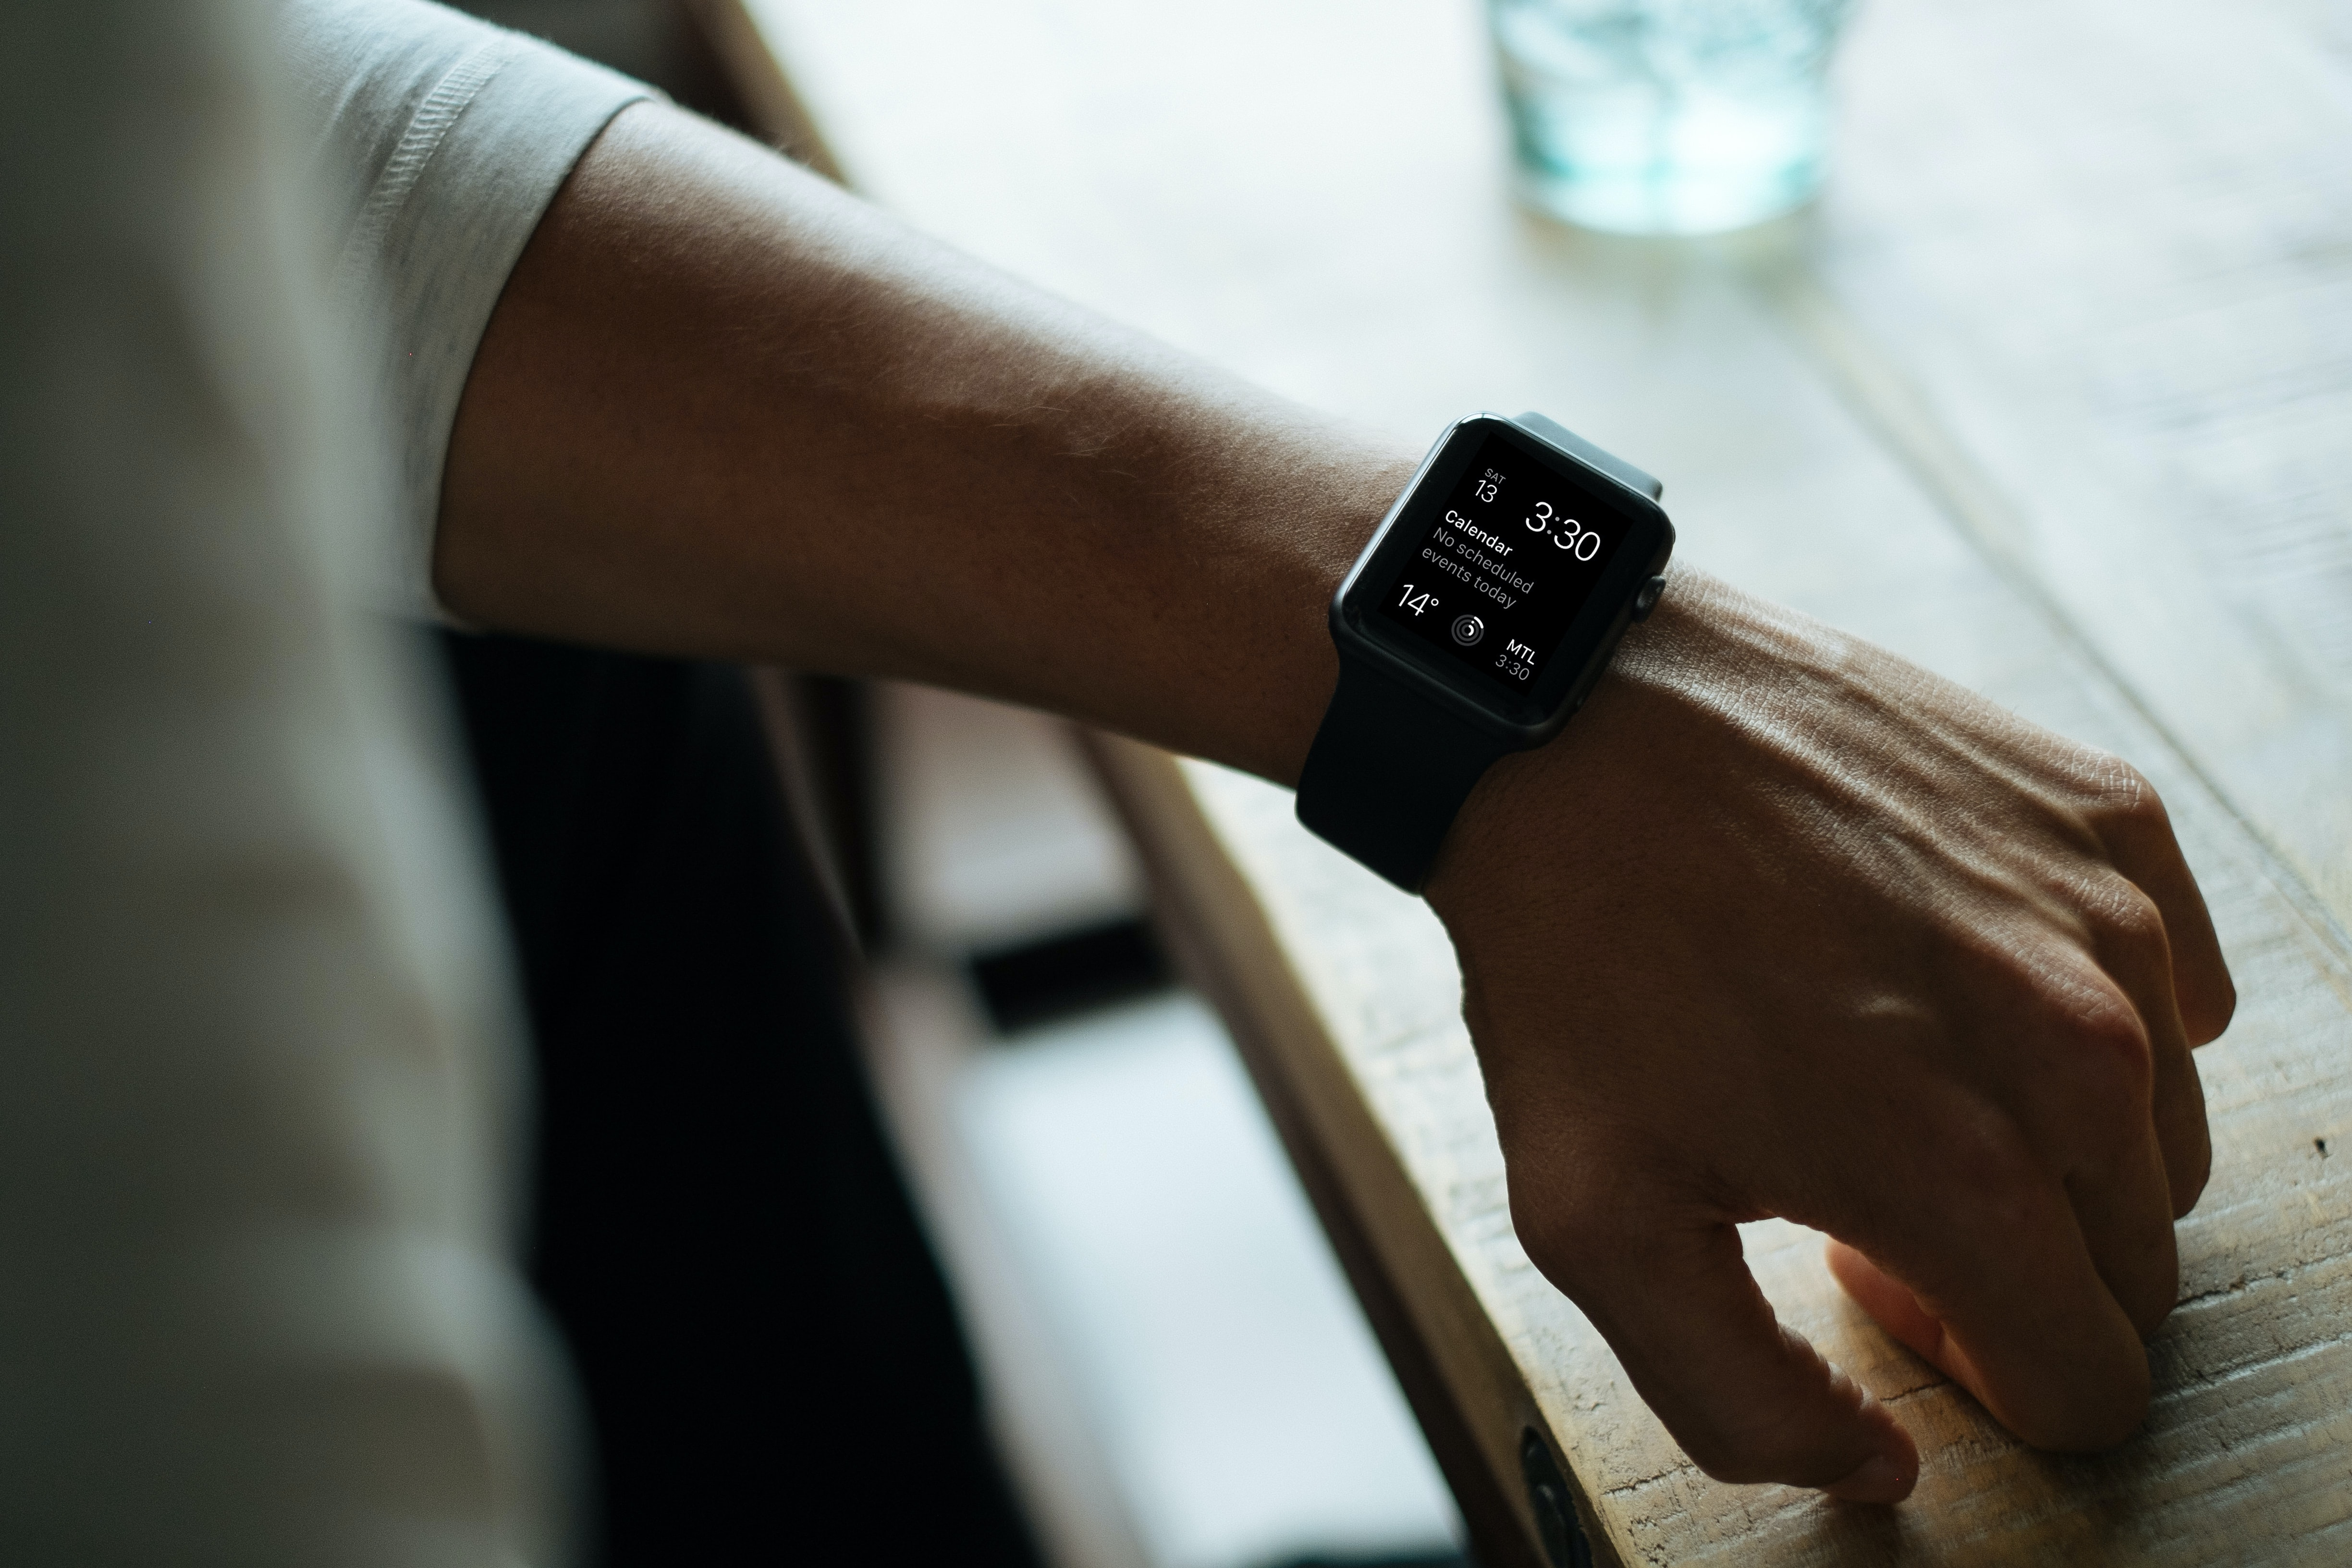 An apple wristwatch displaying on its screen all the amazing features it comes with